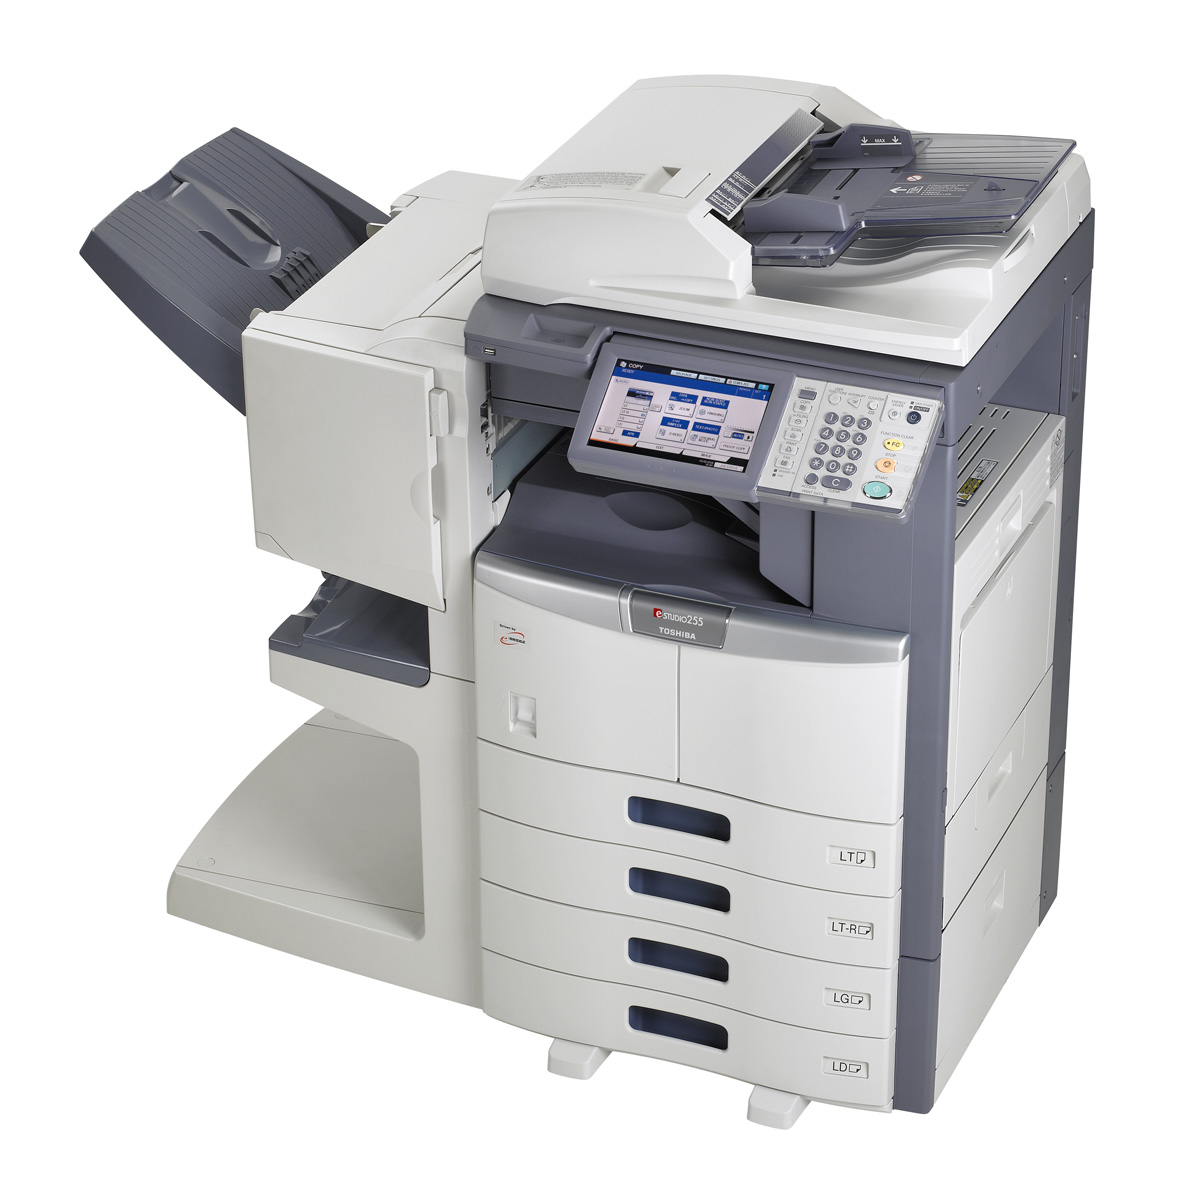 Copier machine.jpg